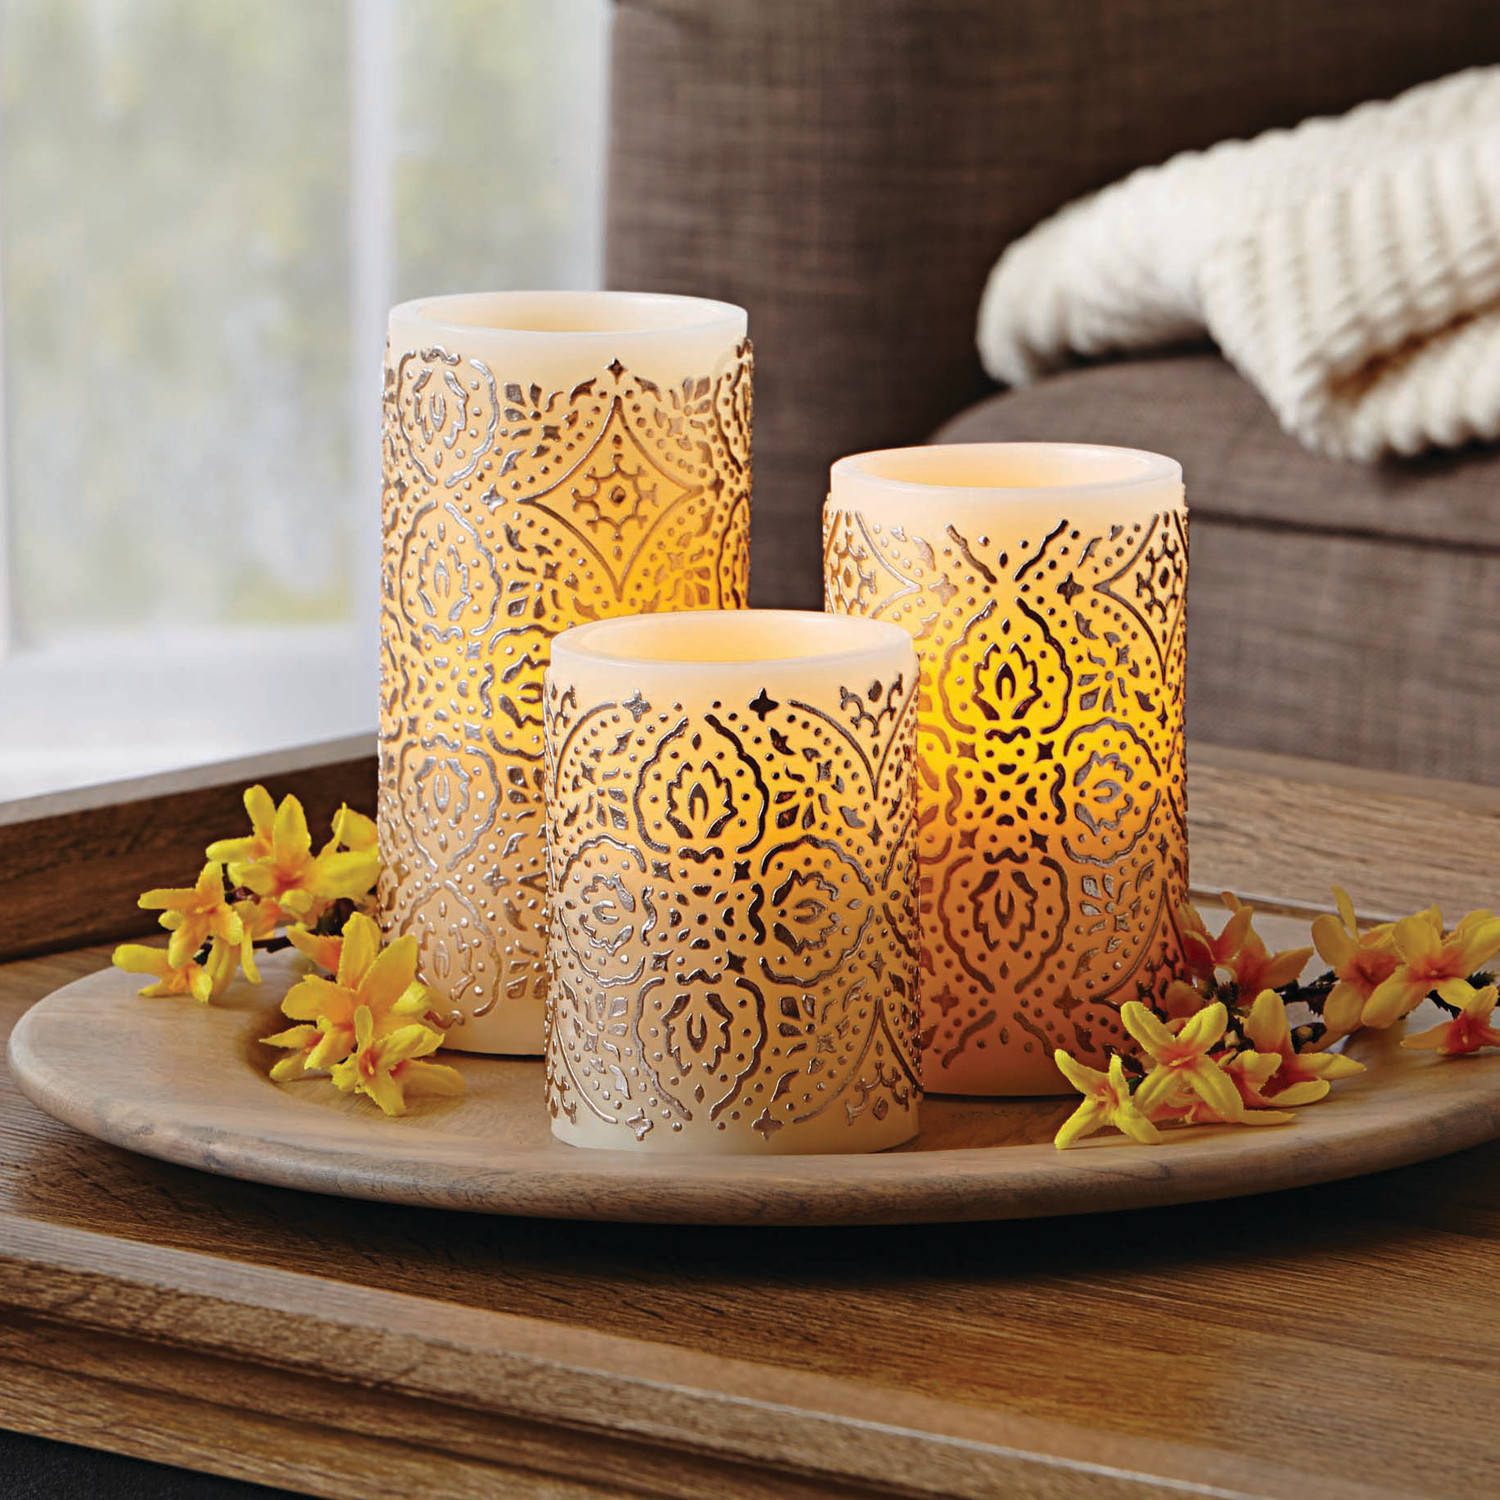 Better Homes and Gardens Malaysian Motif Flameless LED Pillar Candles, Set of 3